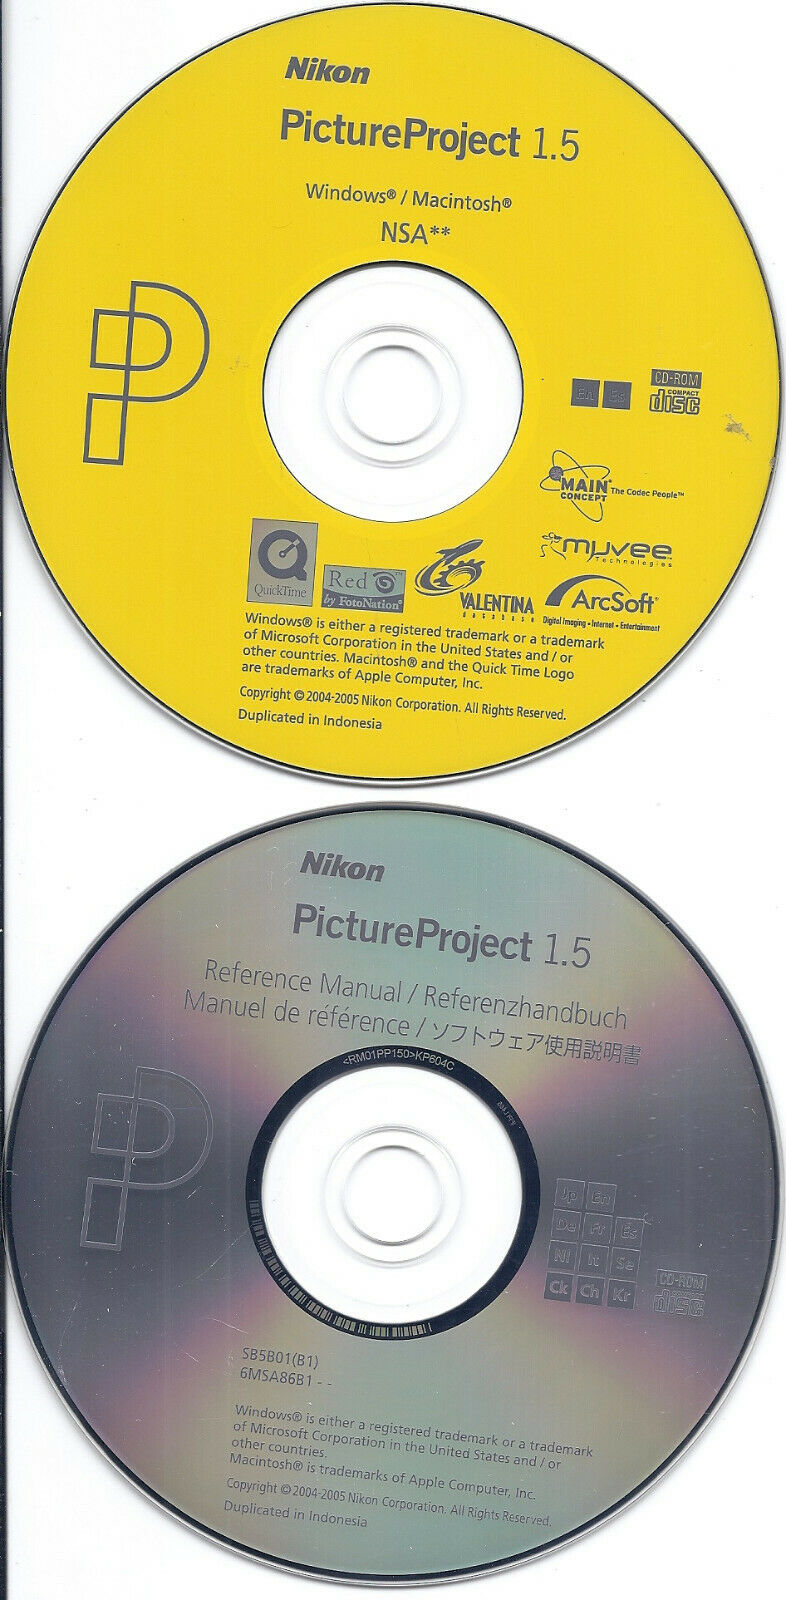 Nikon PictureProject 1.5 Software CD & Reference Manual CD (PC & MAC, 2005)